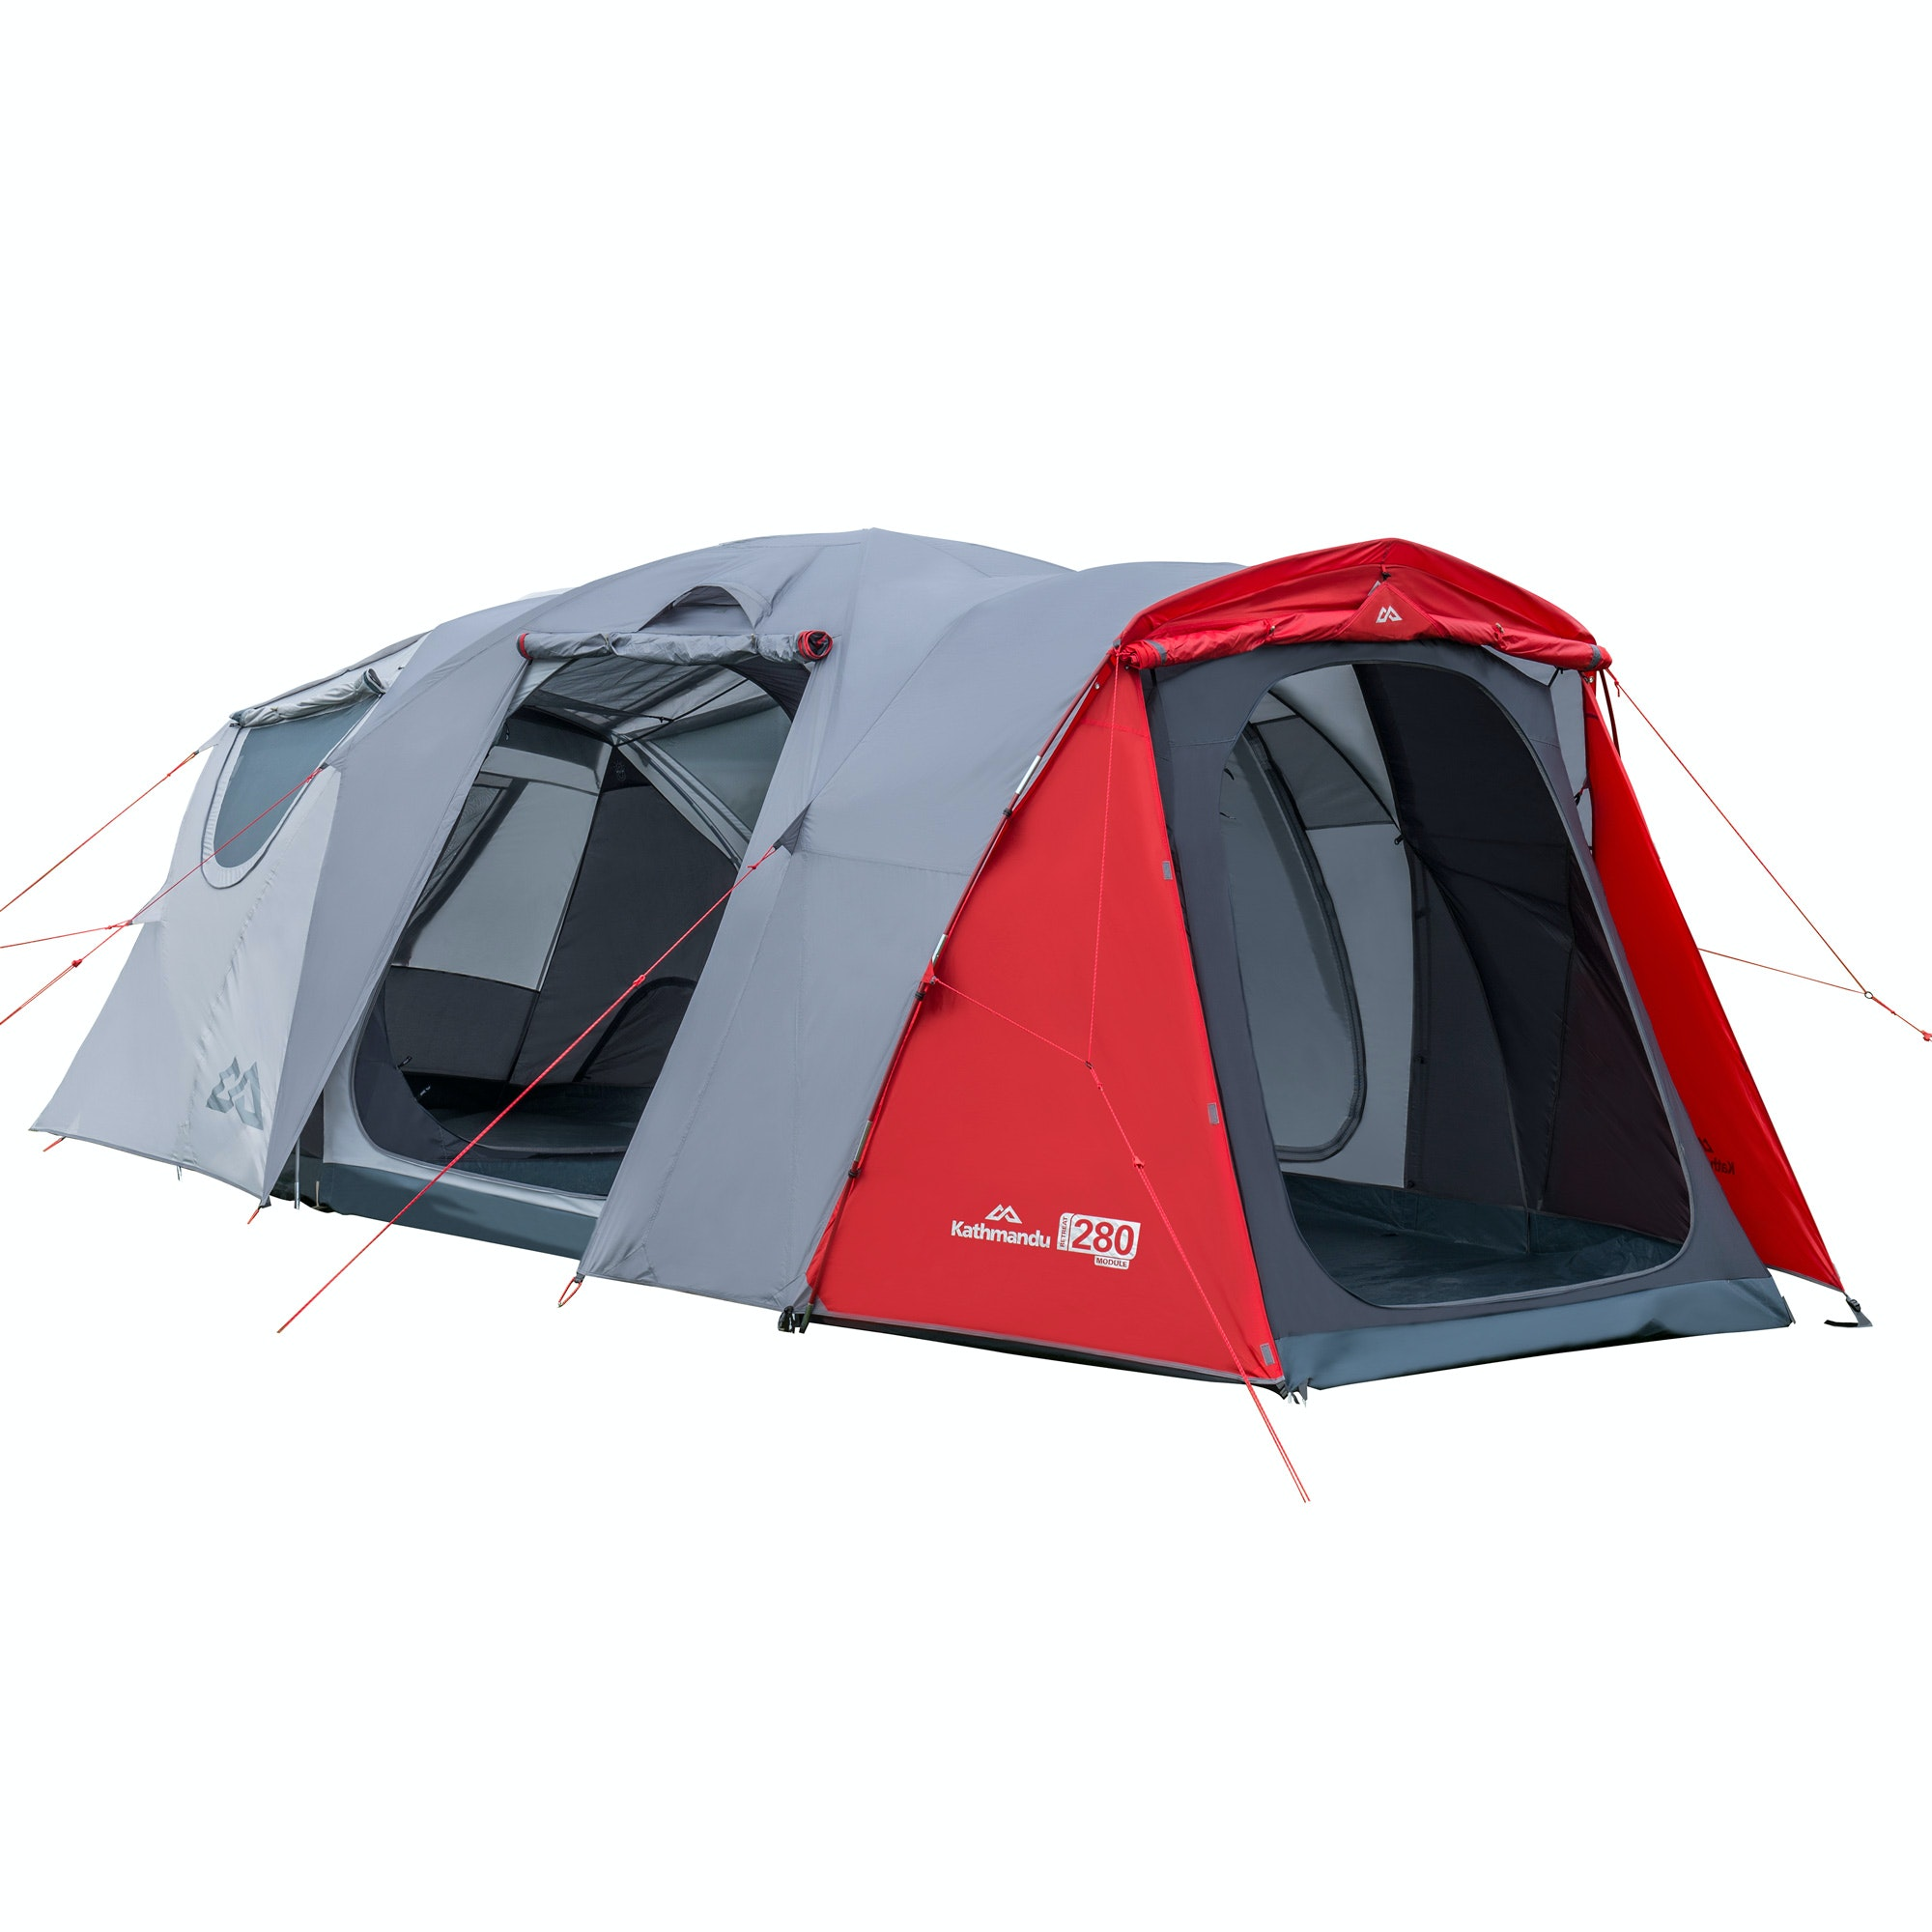 H41  sc 1 st  Kathmandu & Retreat 280 5 Person Module Tent - Warm Grey/Sunset